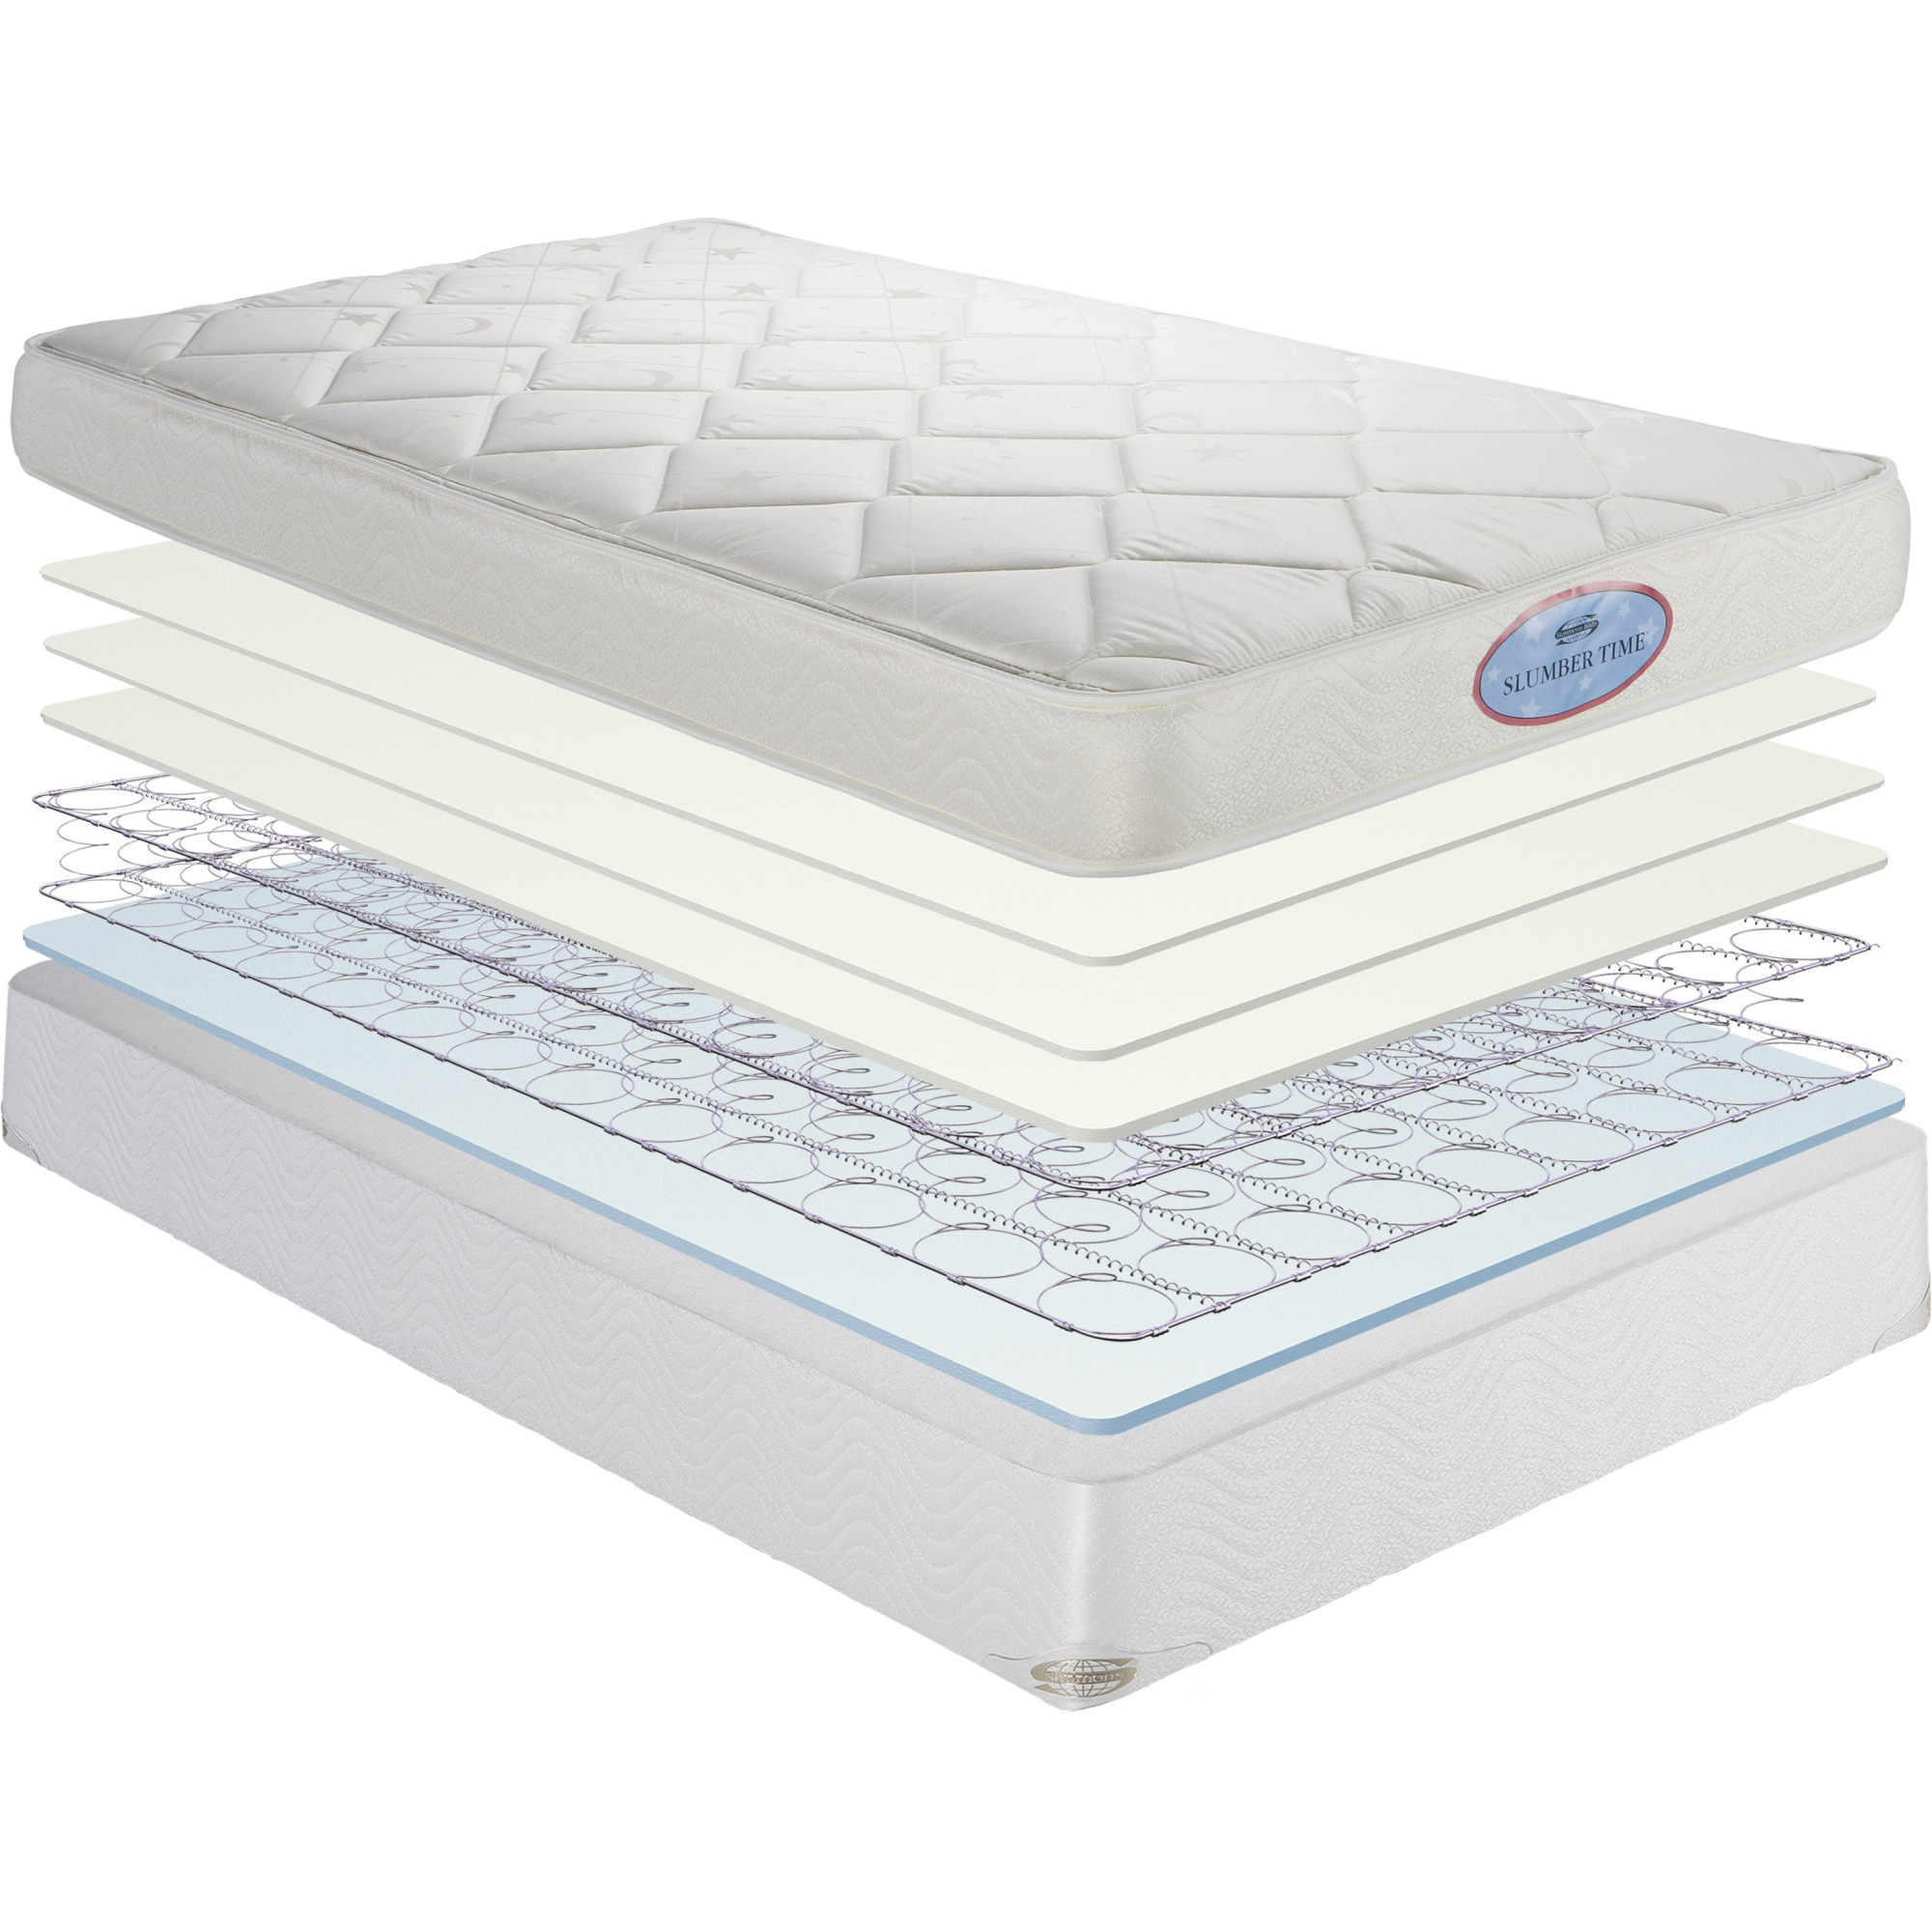 Who Sells Tranquility 2 70% Waveless Cal King Waterbed Mattress The Cheapest